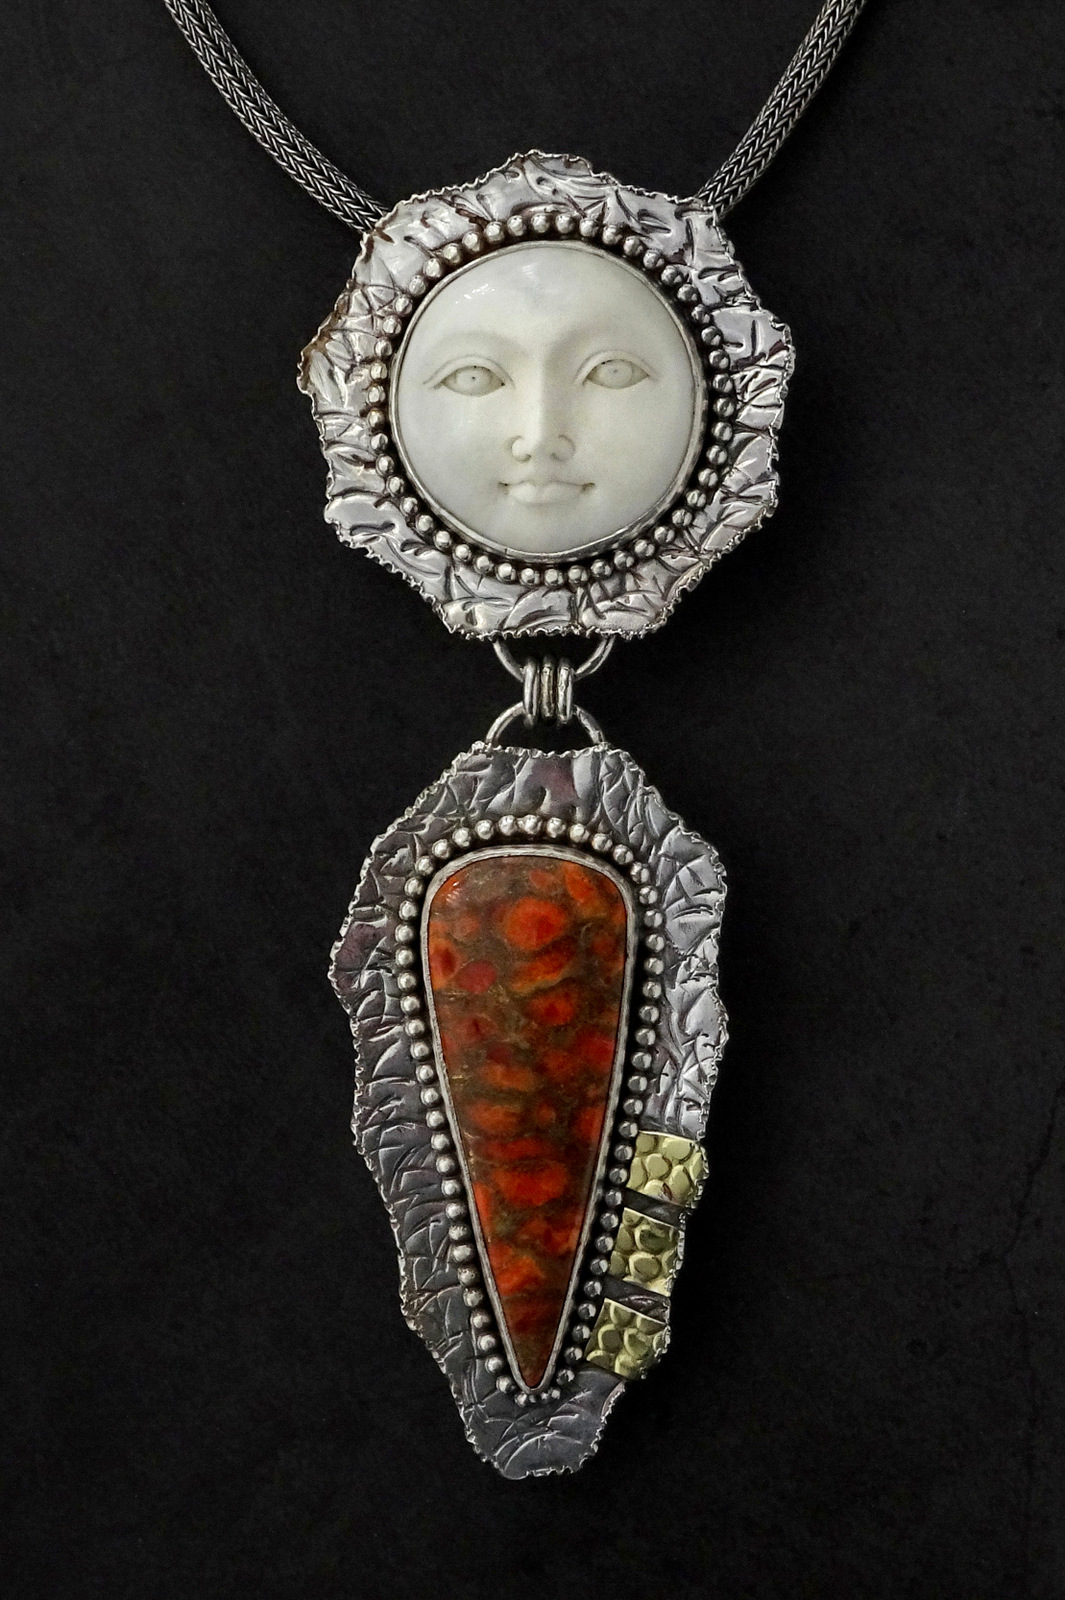 1-Sylvia McCollum, Handcrafted Pendant, Faces of Courage-002.JPG